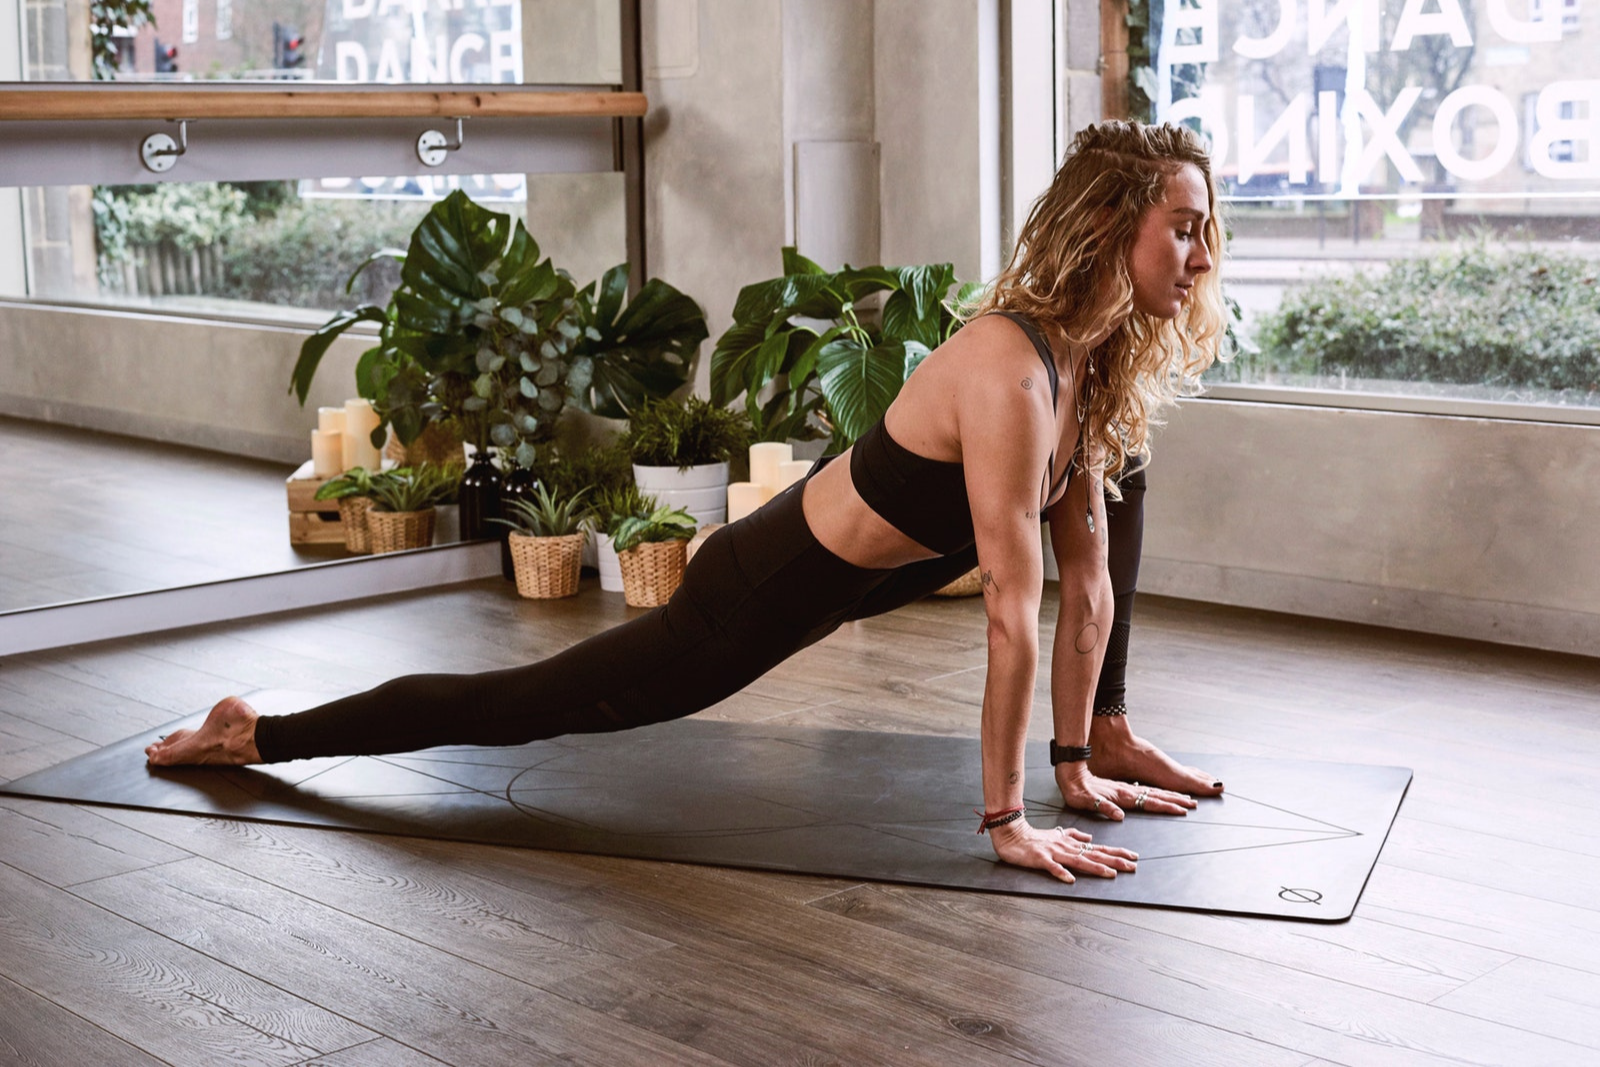 Woman Doing Yoga | Your First Yoga Class? Here Are 9 Tips To Help You Be Ready